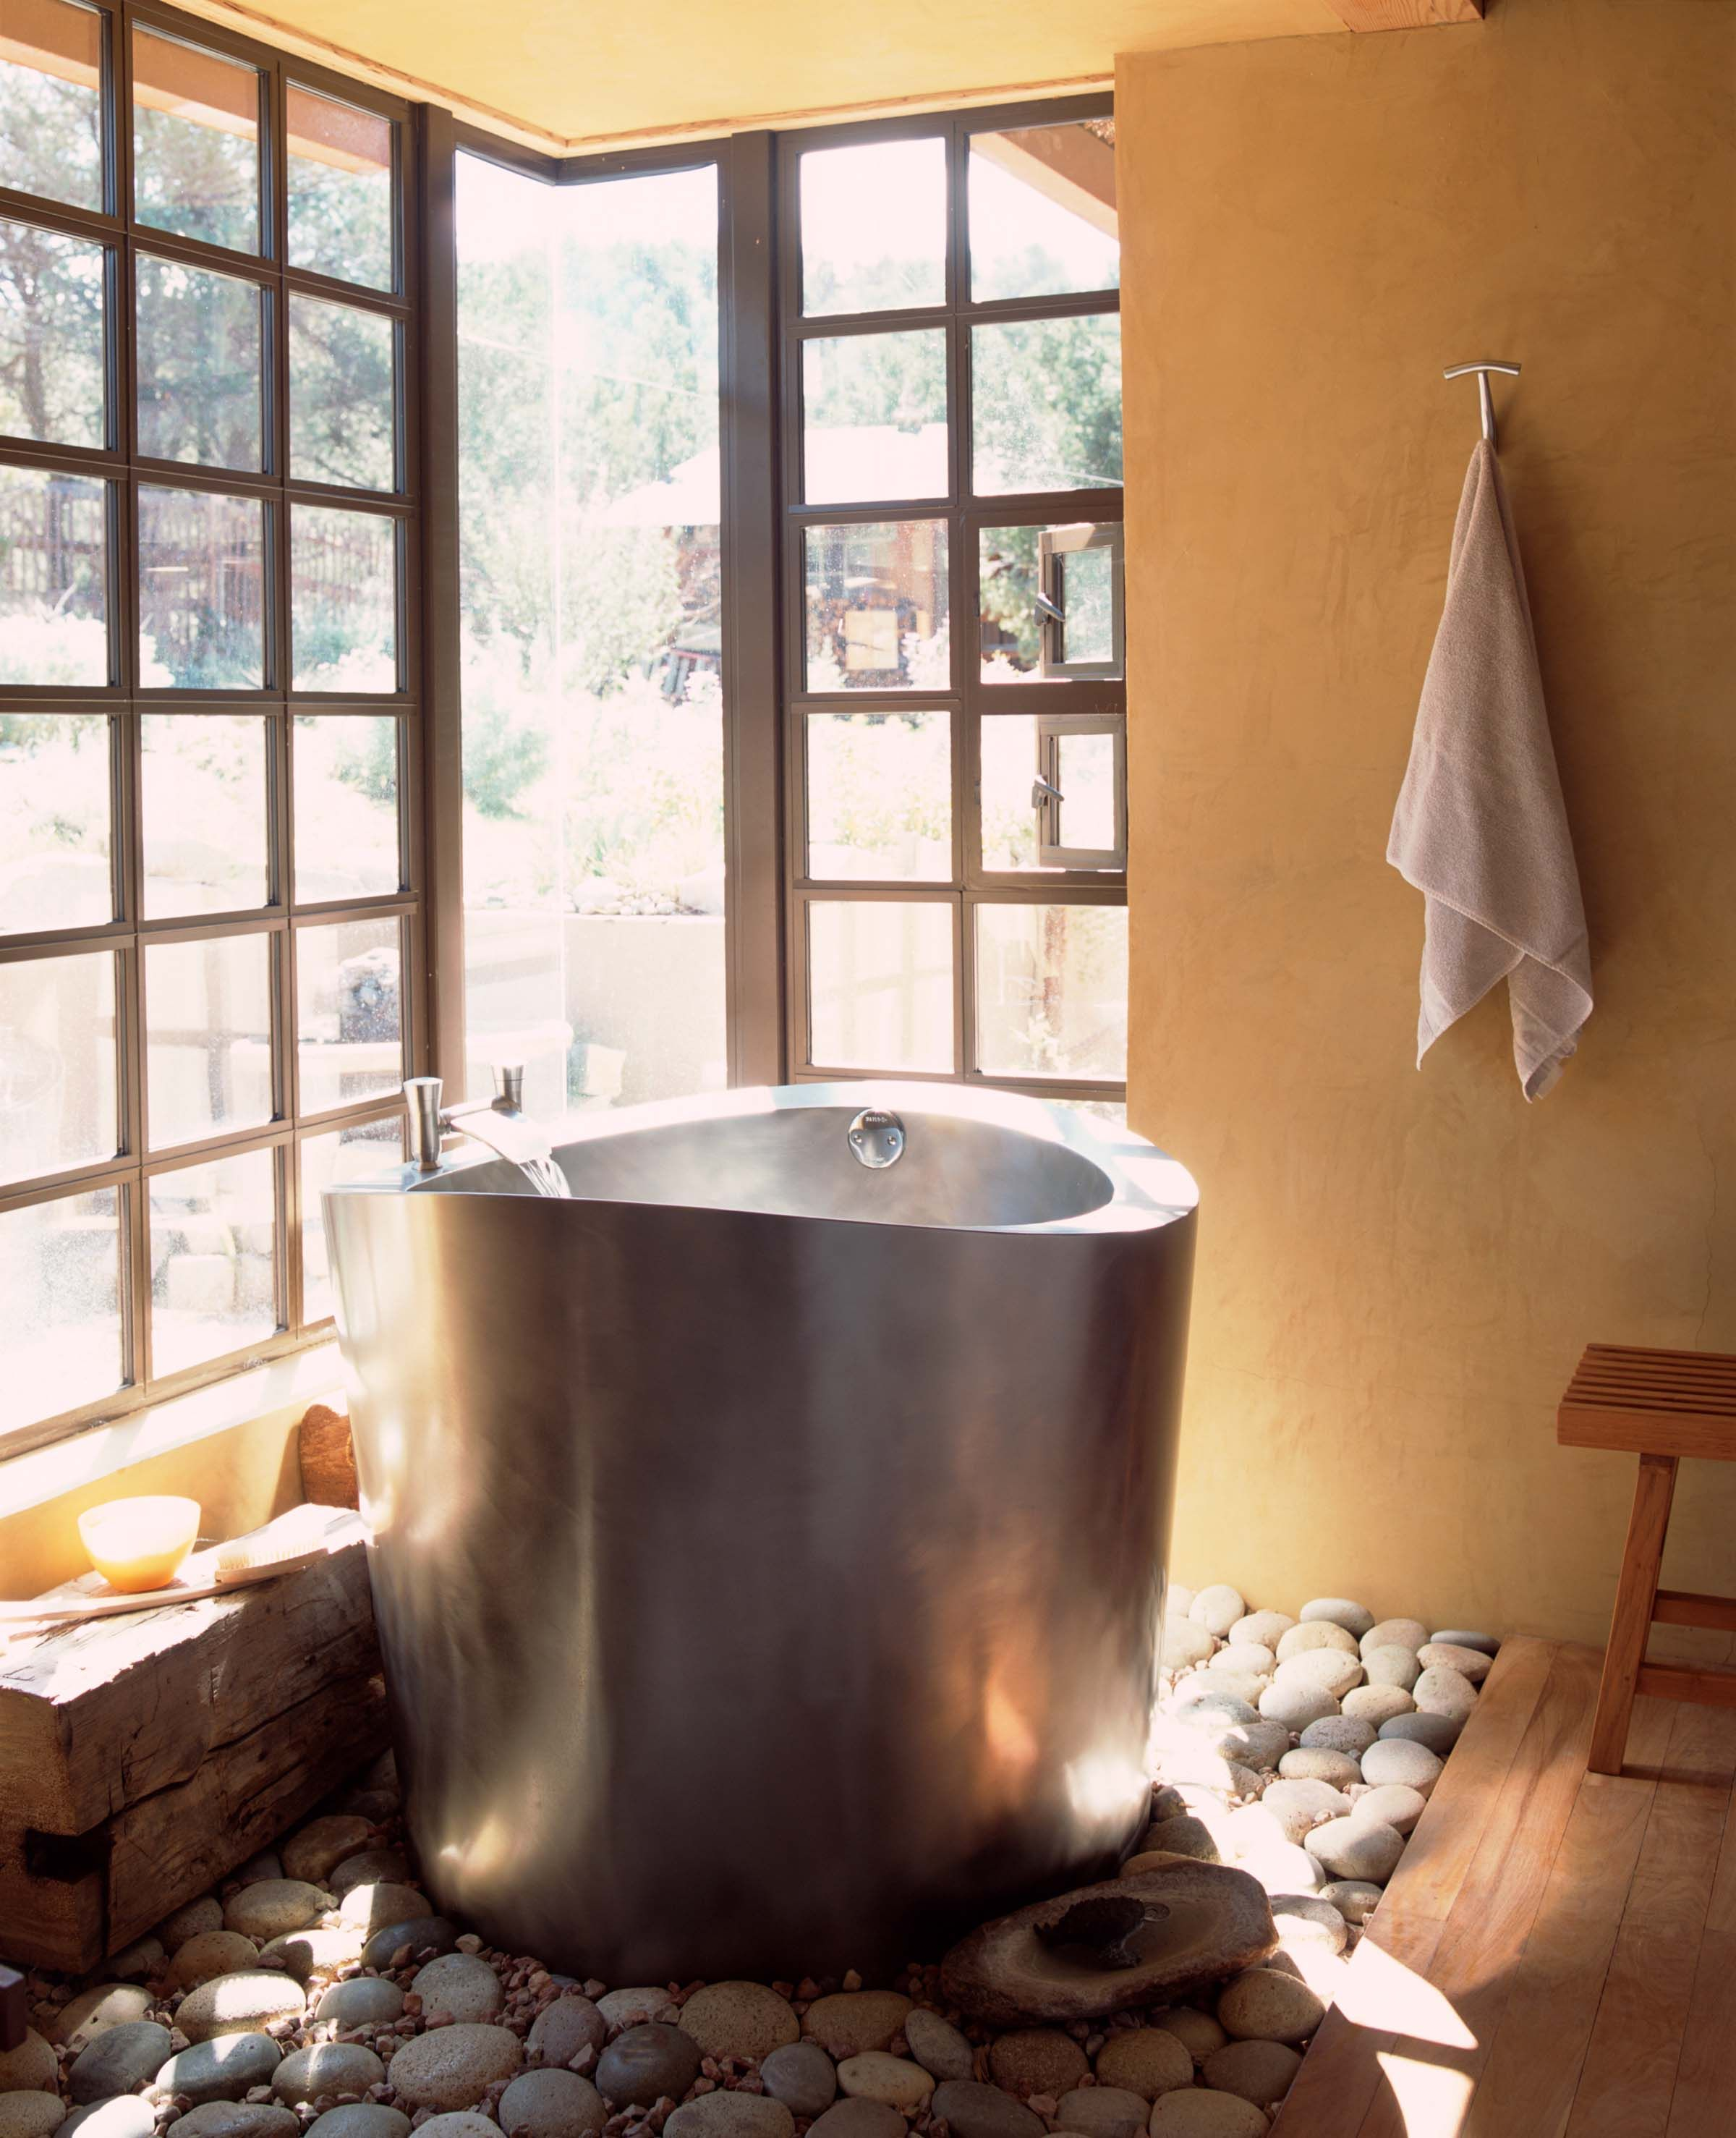 This Japanese Styled Stainless Steel Ofuro Tub Is Made For One Bather Situated Atop Of Bed Of